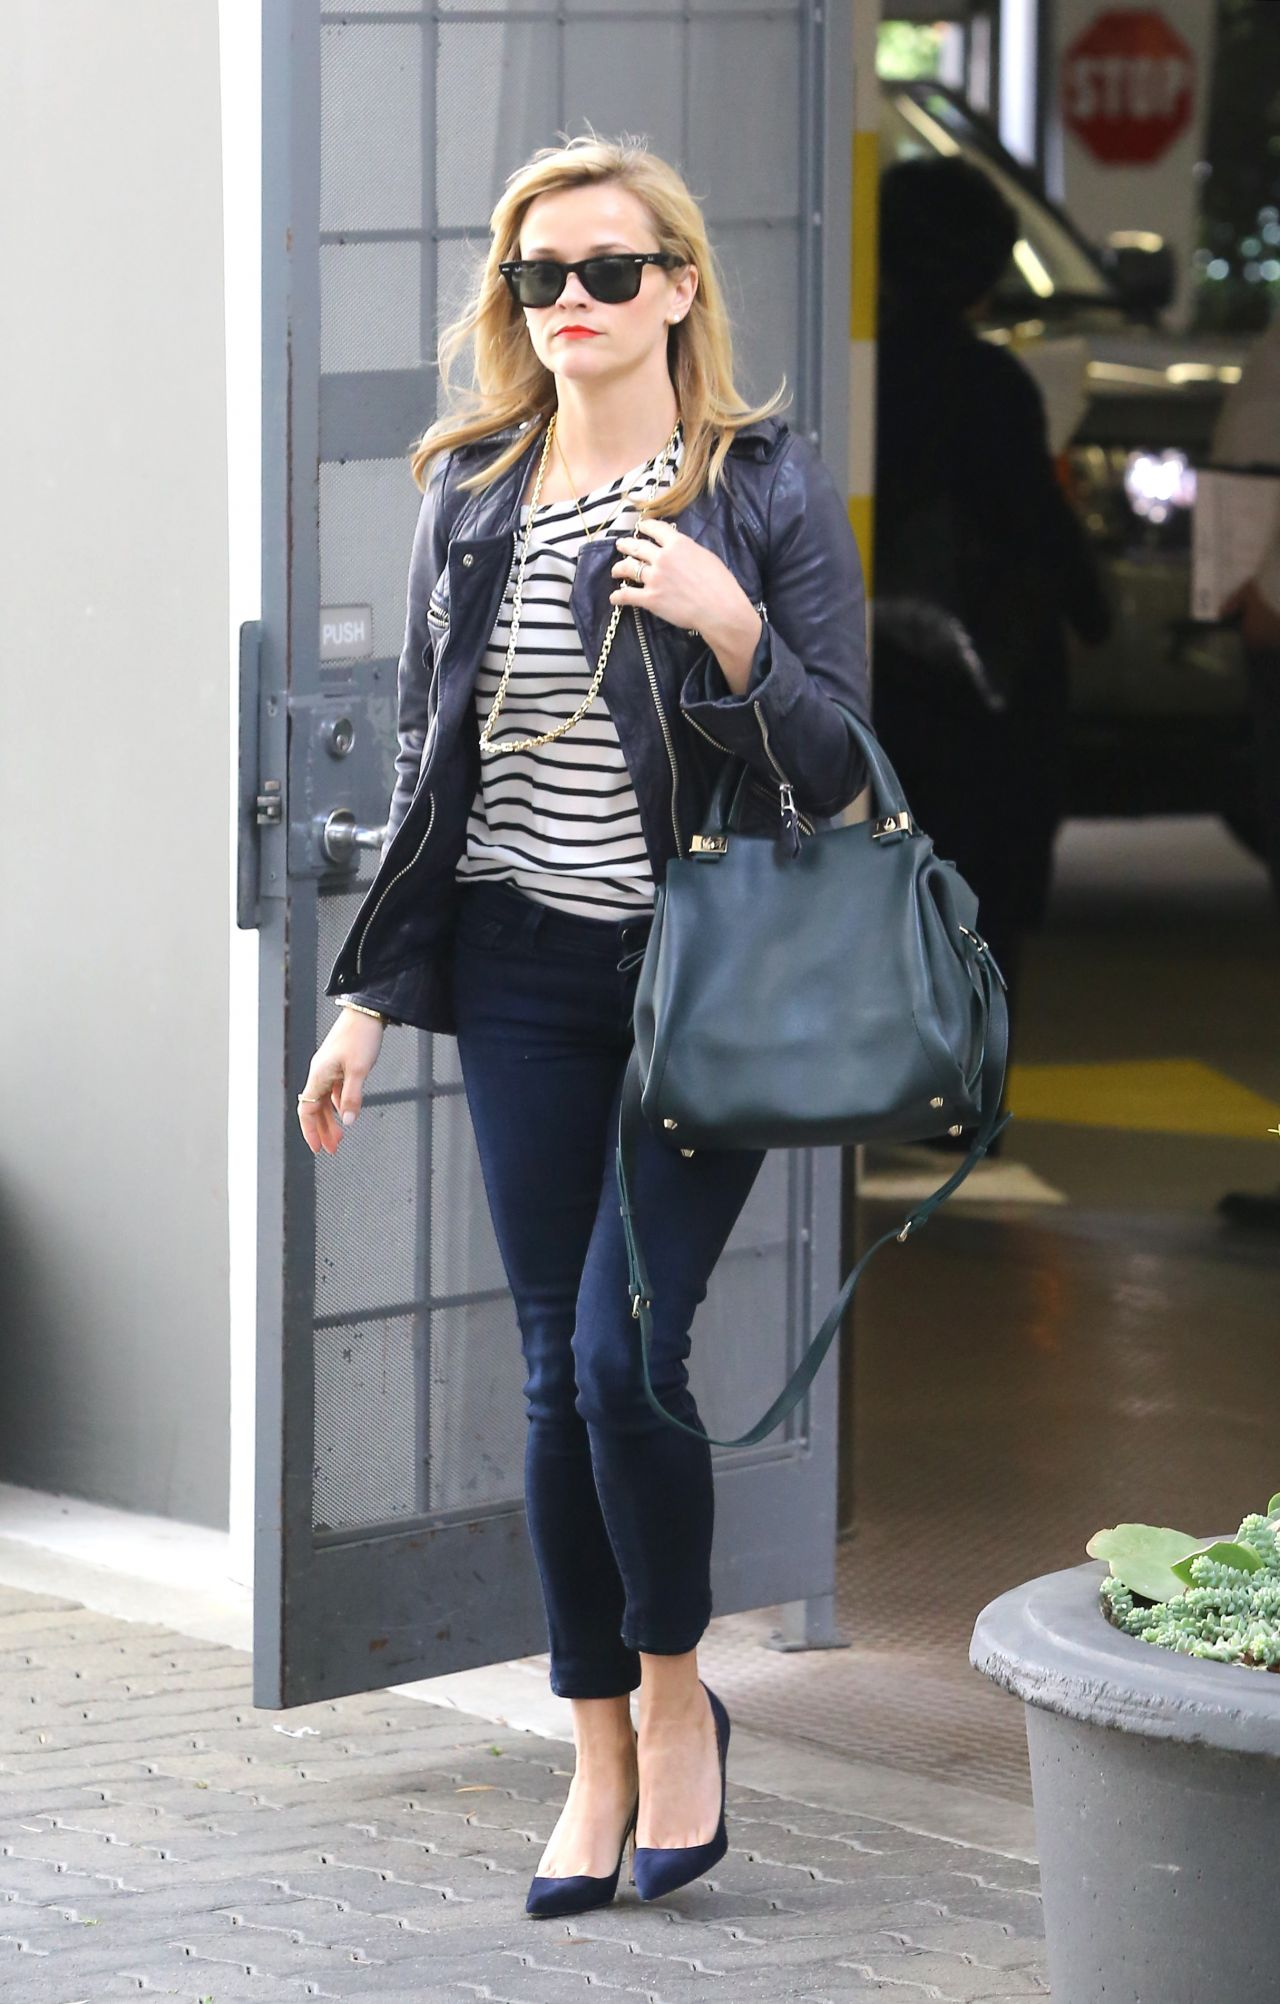 Reese Witherspoon Jim Toth Reese Witherspoon Casu...